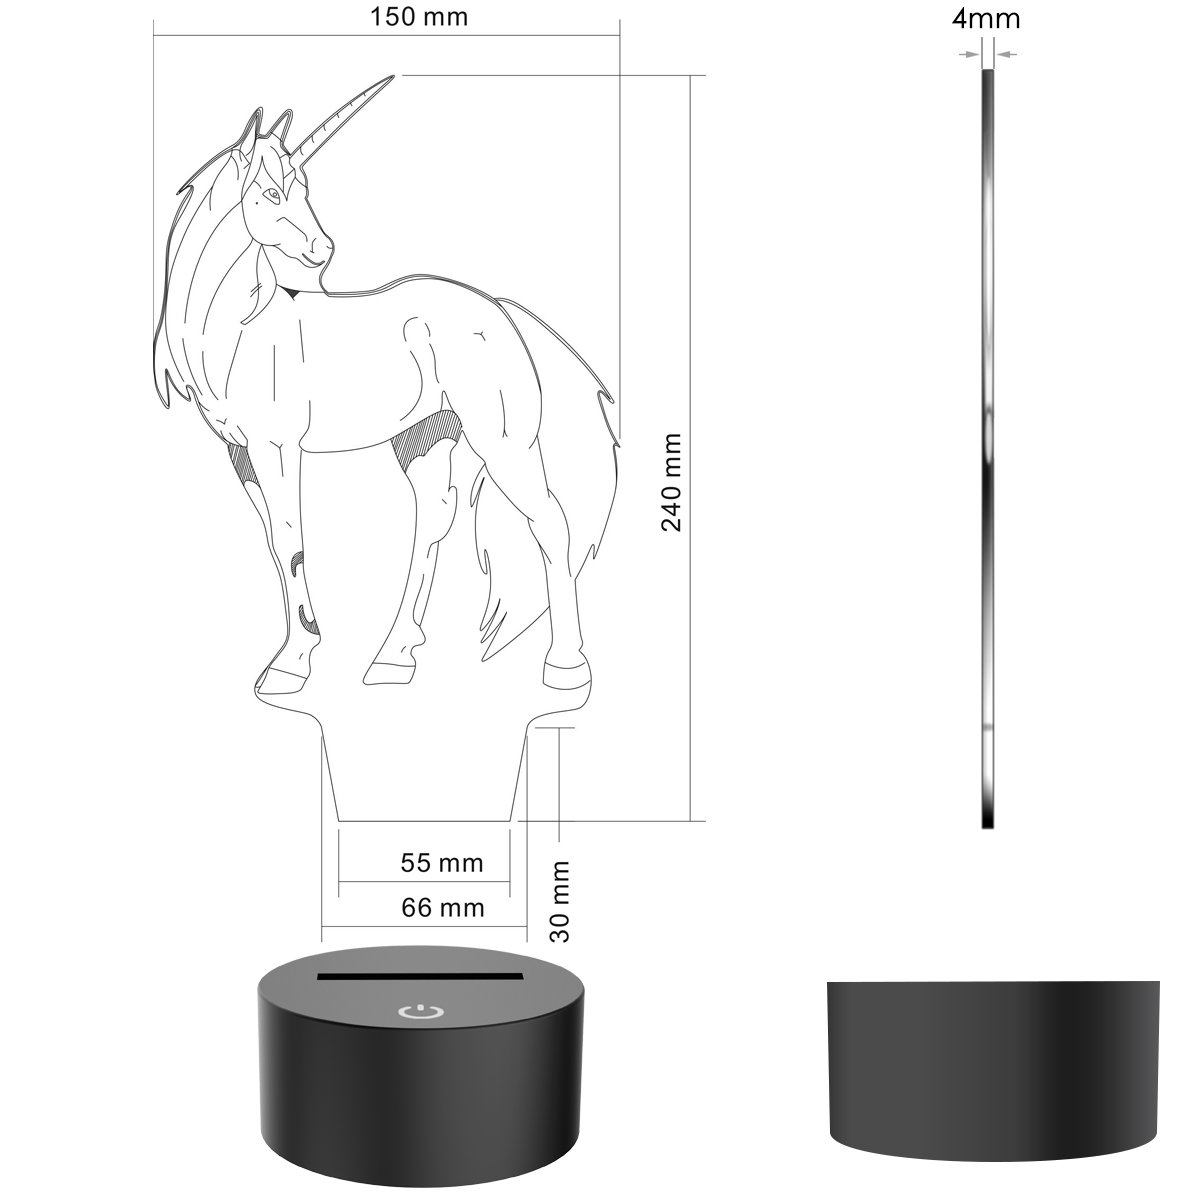 Novelty Unicorn 3D Illusion Lamp Led Night Light with 7 Colors Flashing & Touch Switch USB Powered Bedroom Desk Lamp for Kids Gifts Home Decoration by Atglus (Image #2)